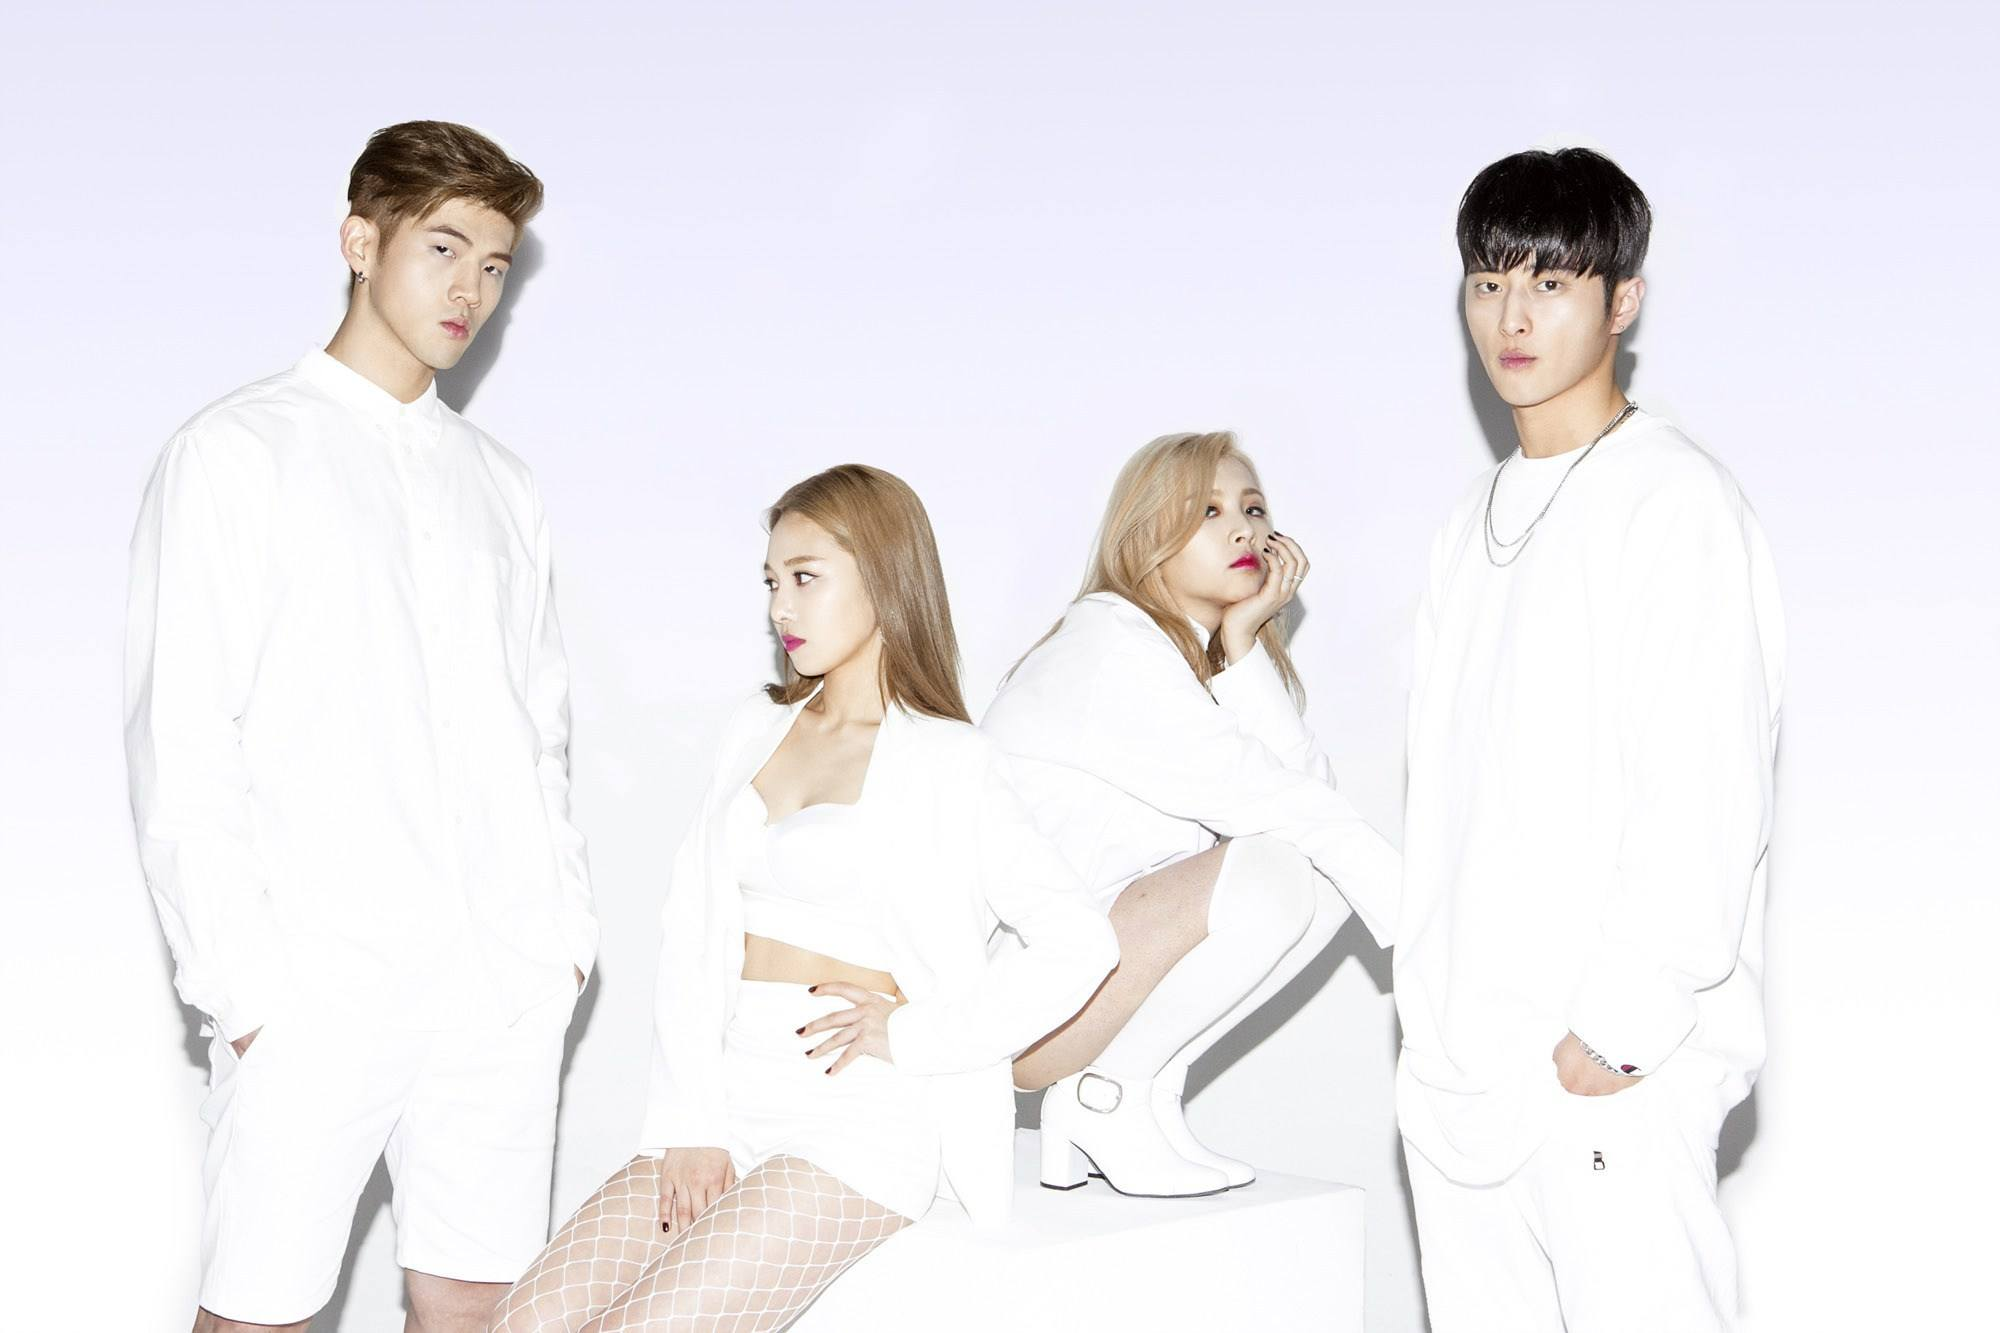 [★GIVEAWAY] Win a pair of tickets to see K.A.R.D in North America